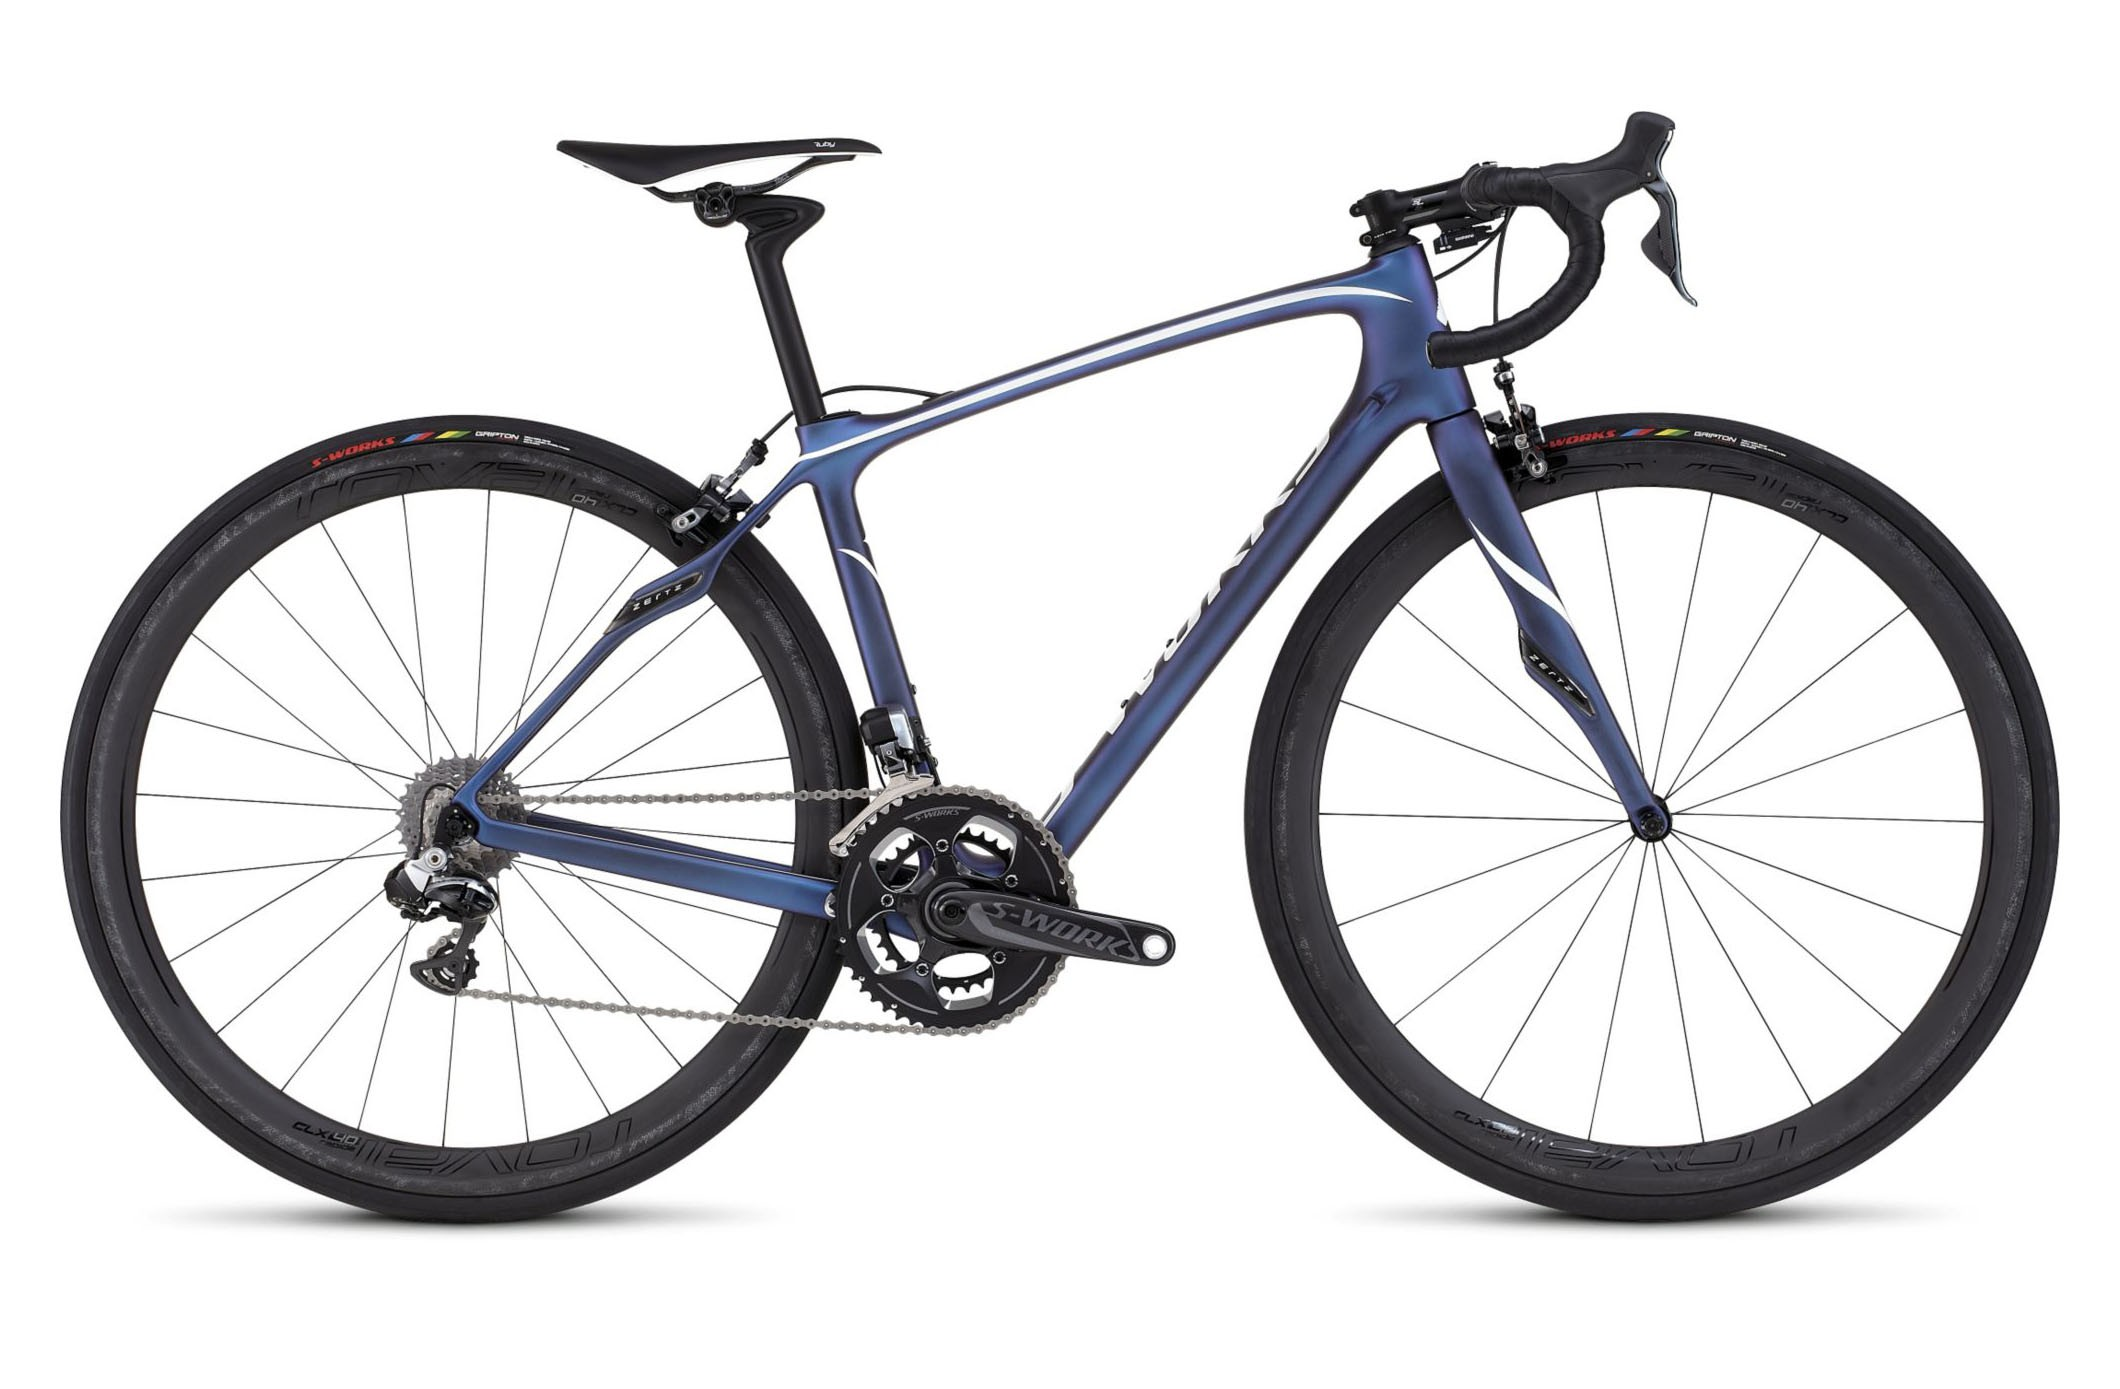 Шоссейный велосипед Specialized S-Works Ruby Di2 (2016)